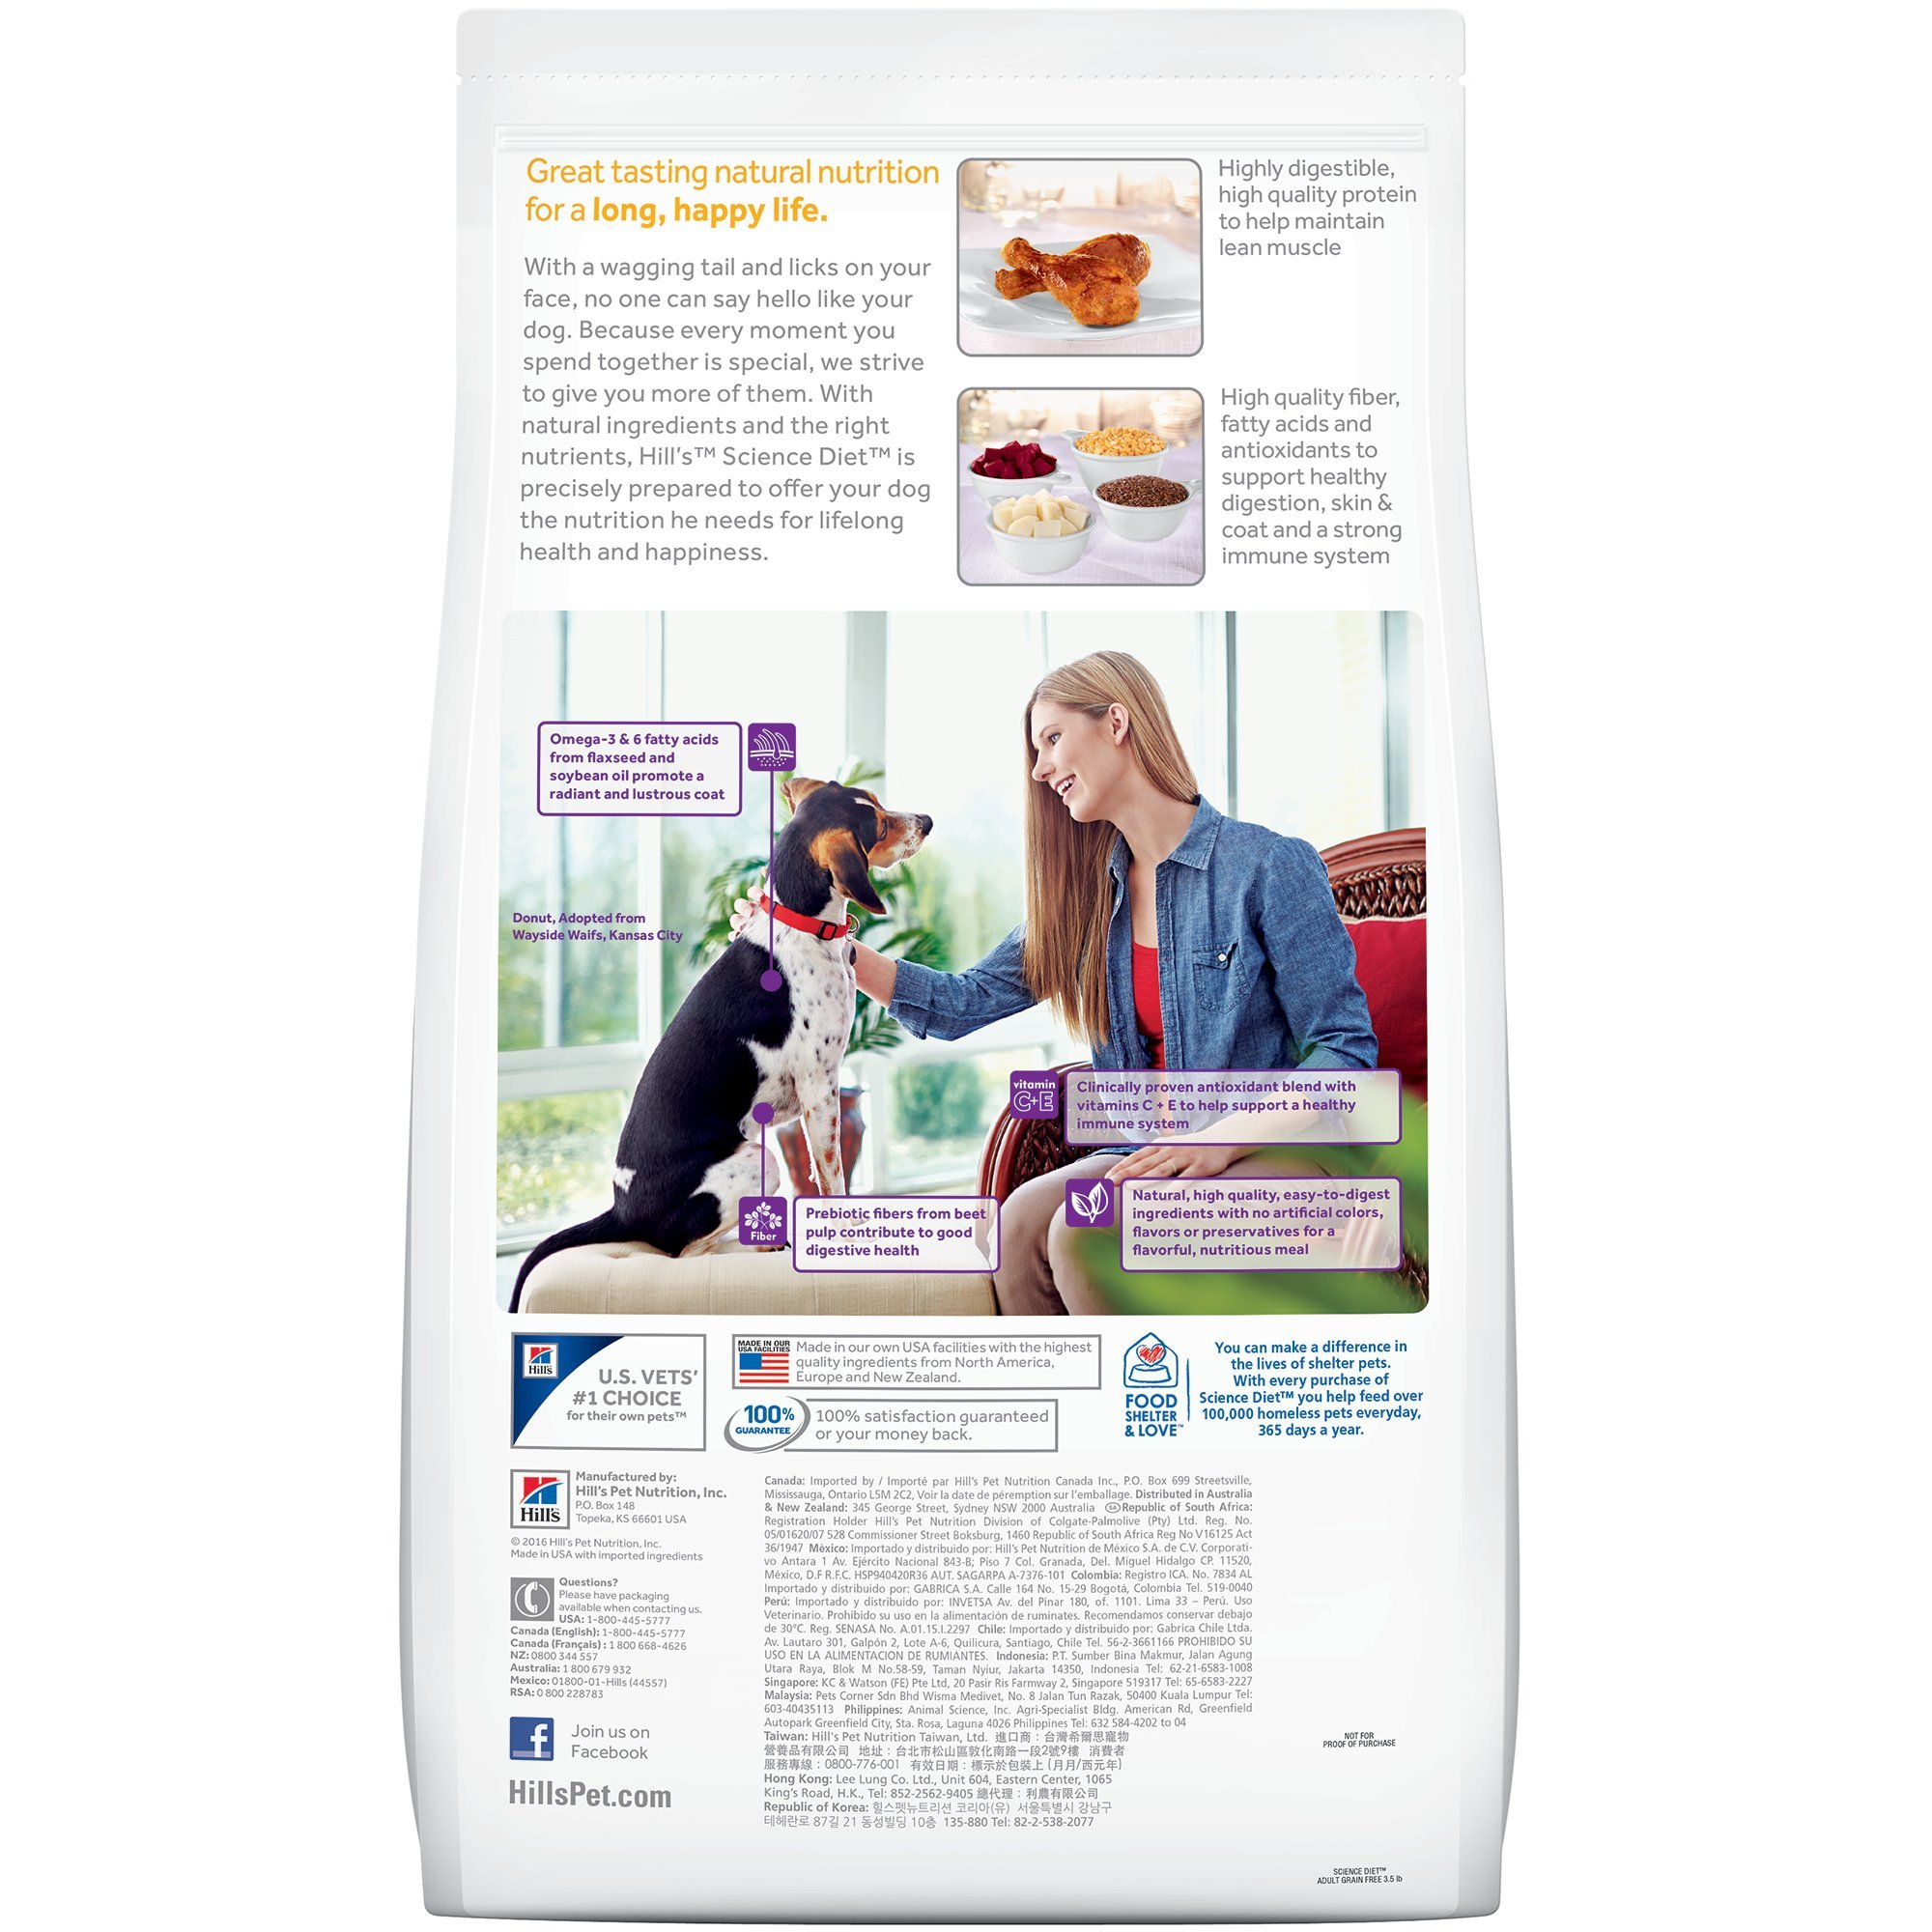 Hill's Science Diet Dry Dog Food, Adult, Grain Free Chicken & Potato Recipe, 21 Lb Bag by Hill's Science Diet (Image #7)